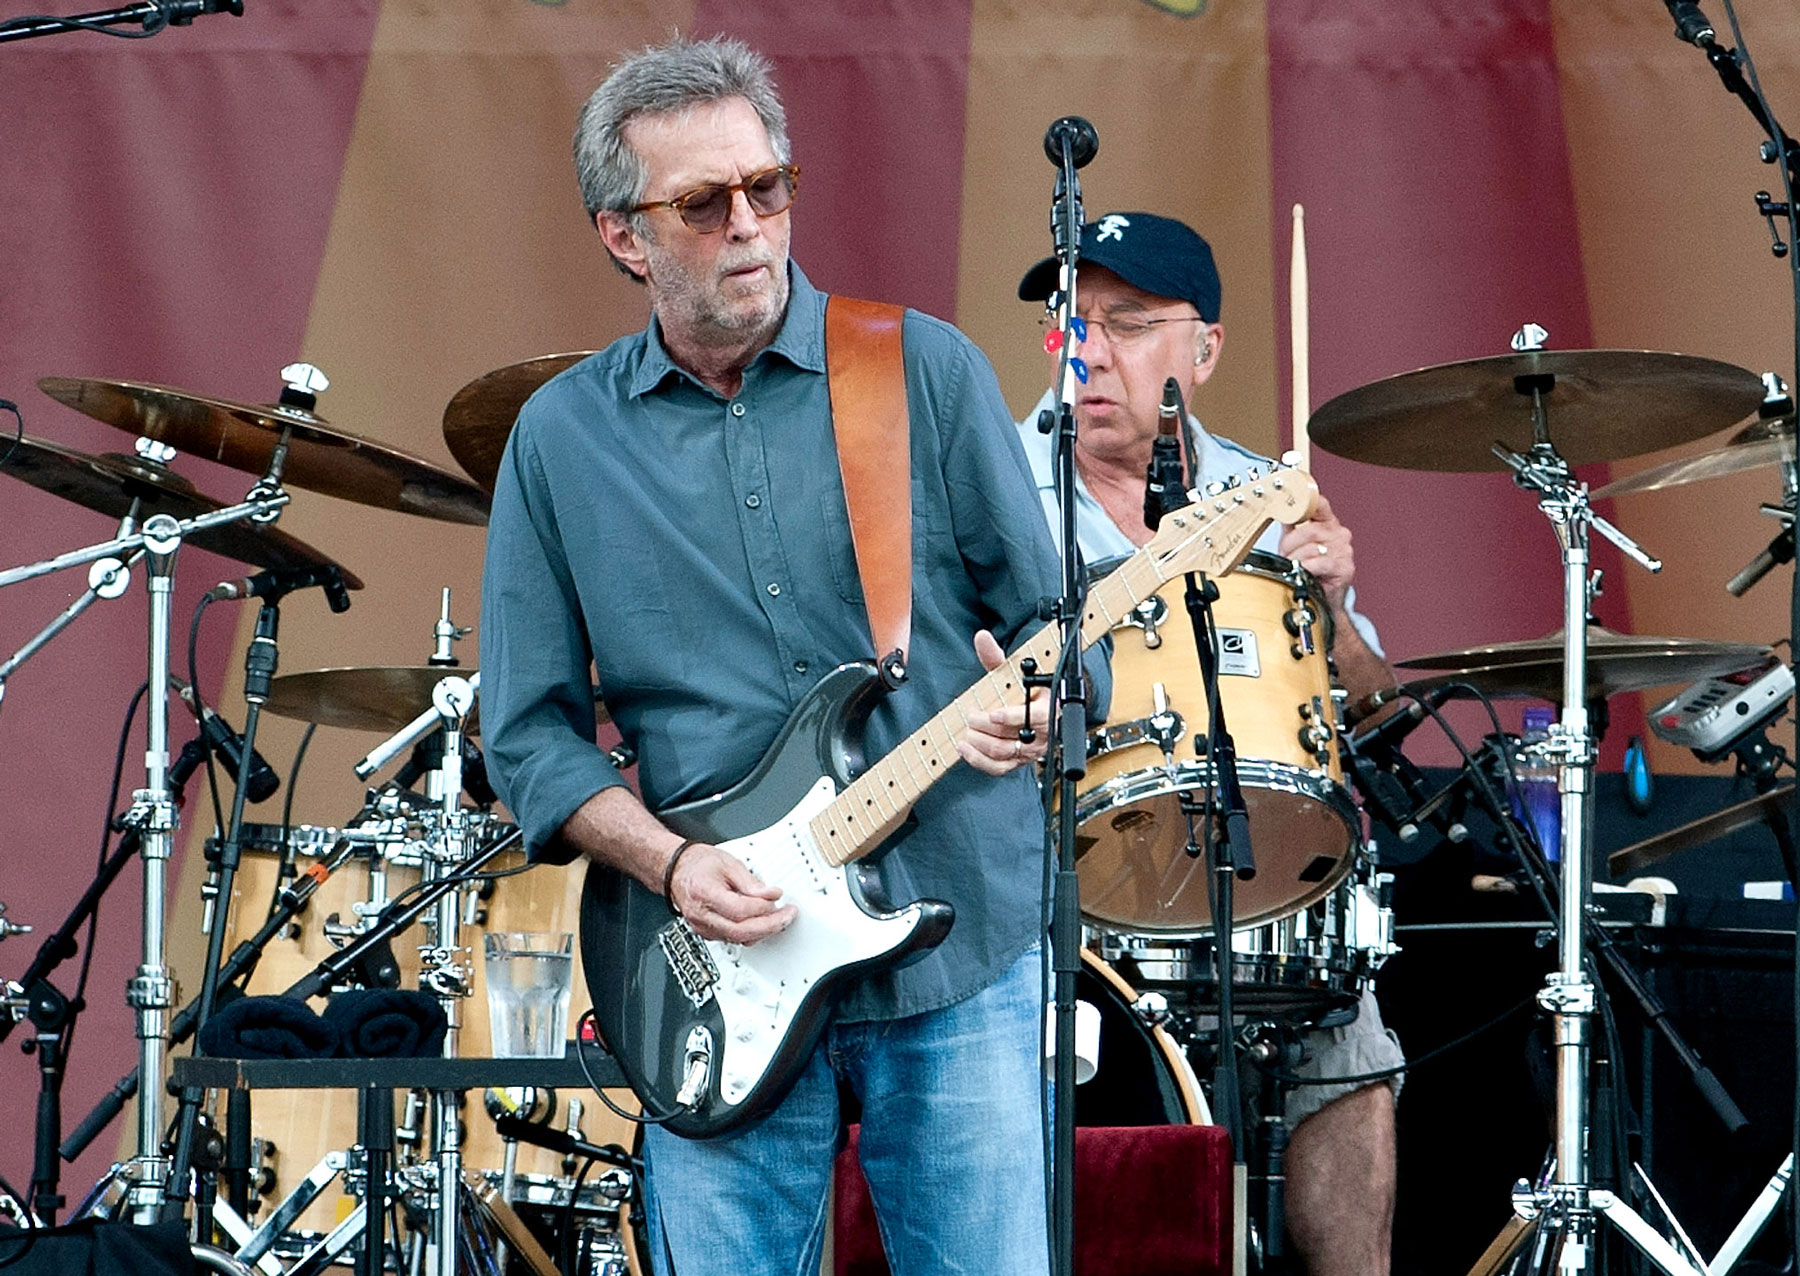 Eric Clapton Hints at Retirement, Says Touring is 'Unbearable'